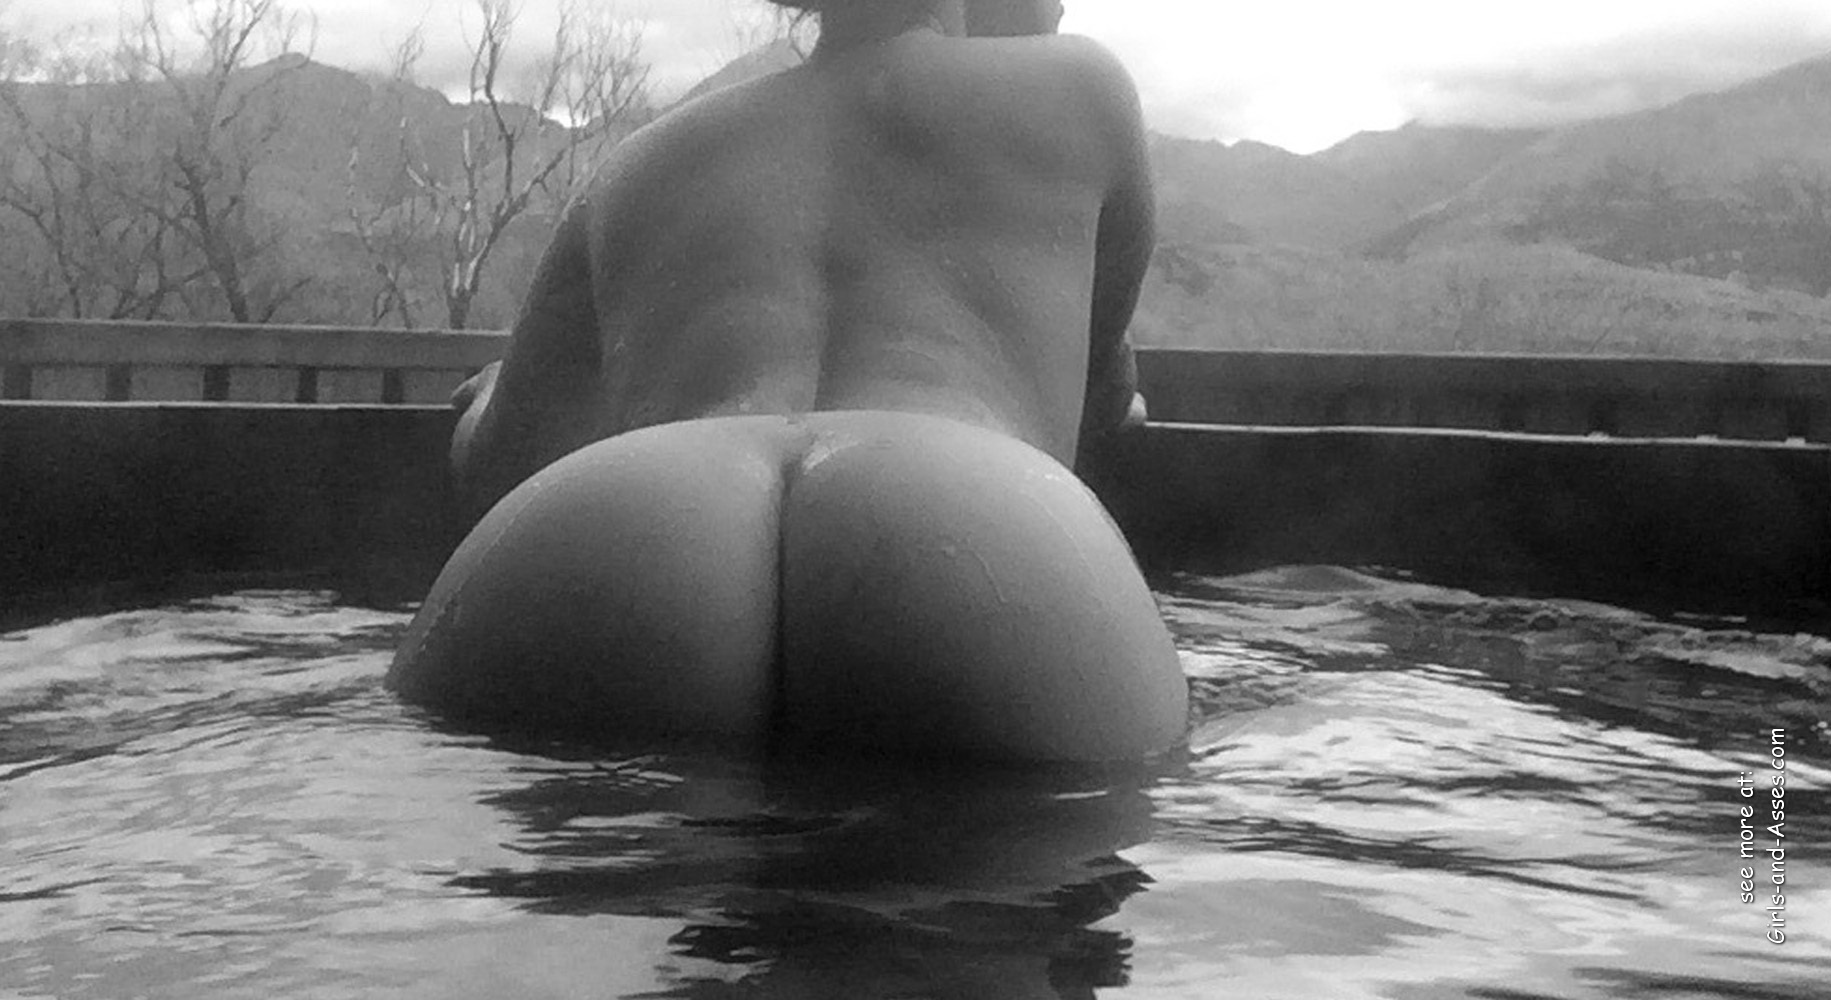 naked girl with big ass in a river picture 02534